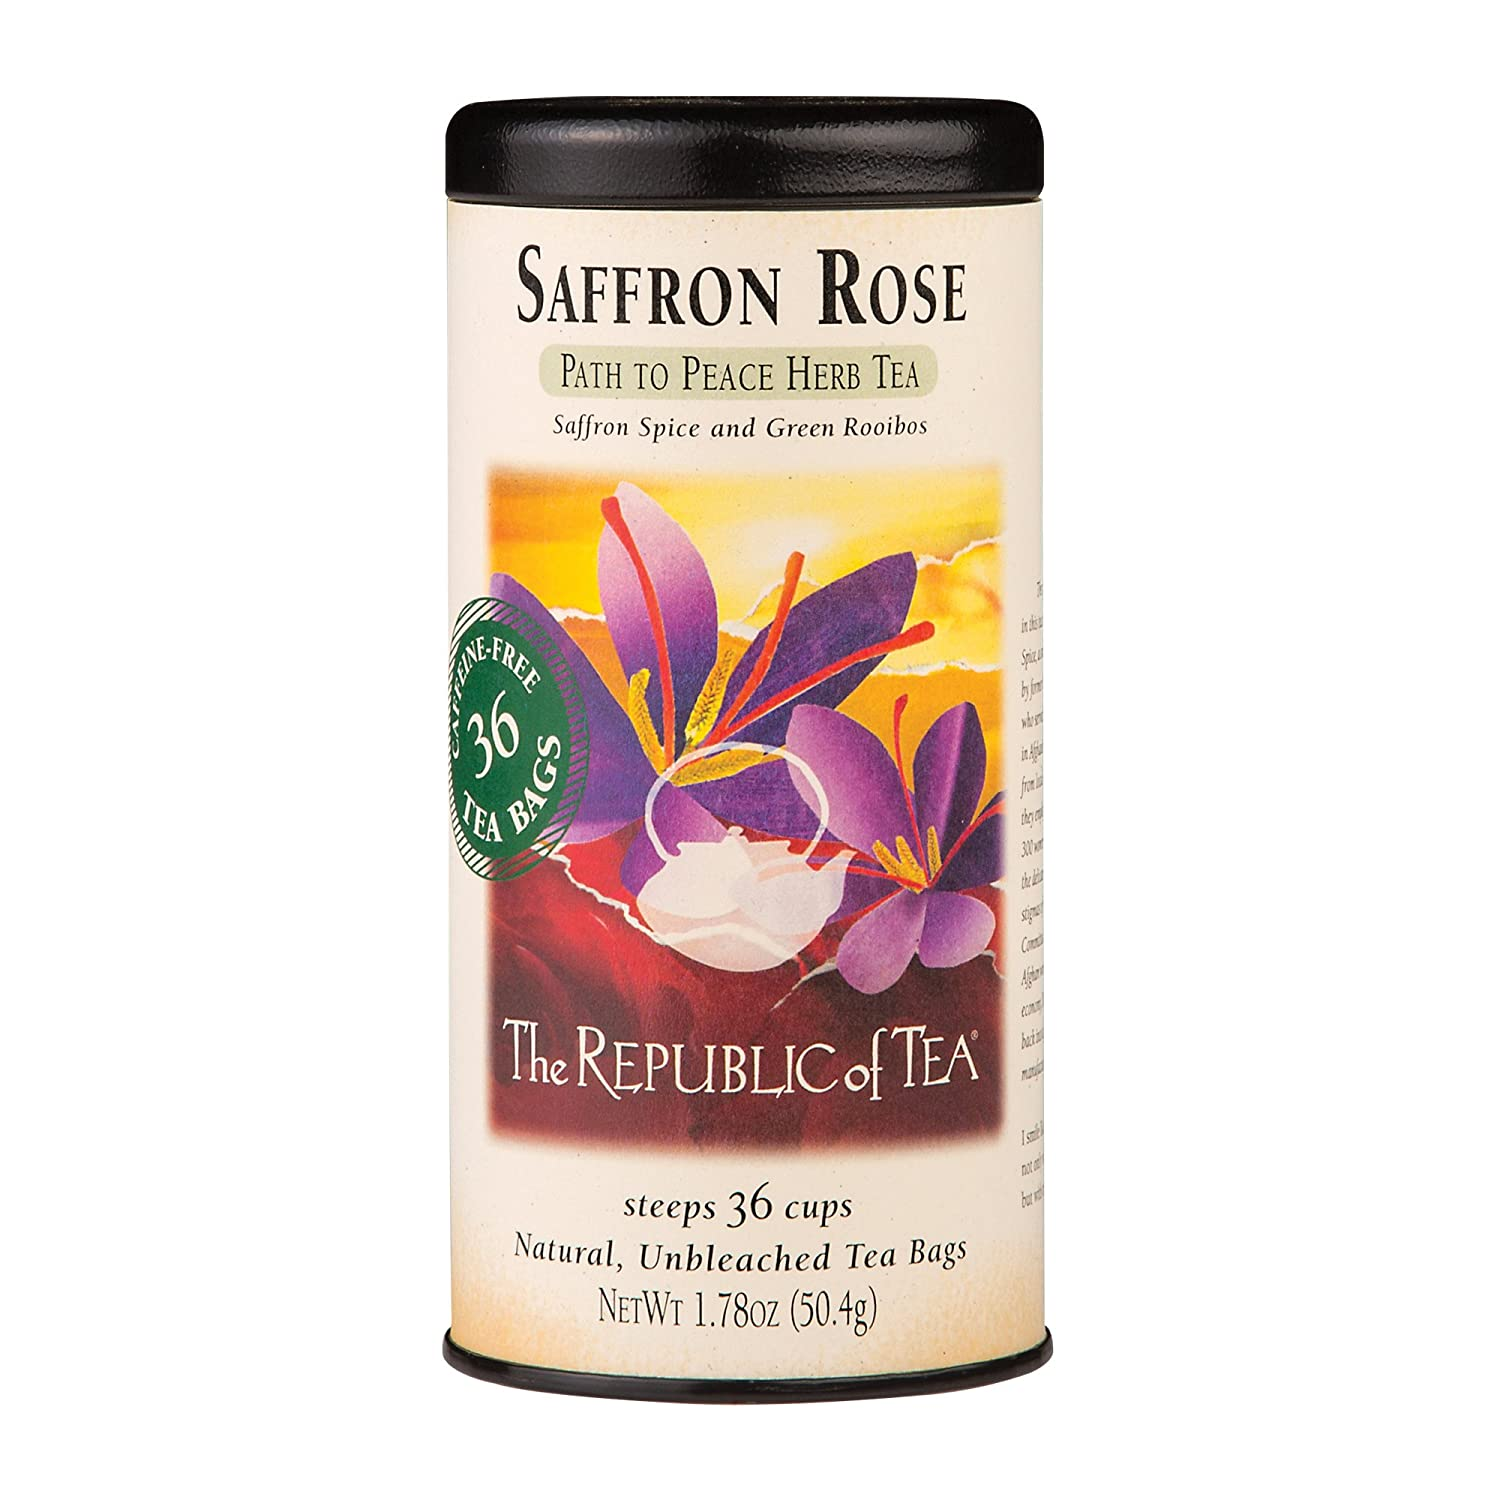 The Republic of Tea Saffron Rose Herbal Tea Bags, 36 Tea Bags